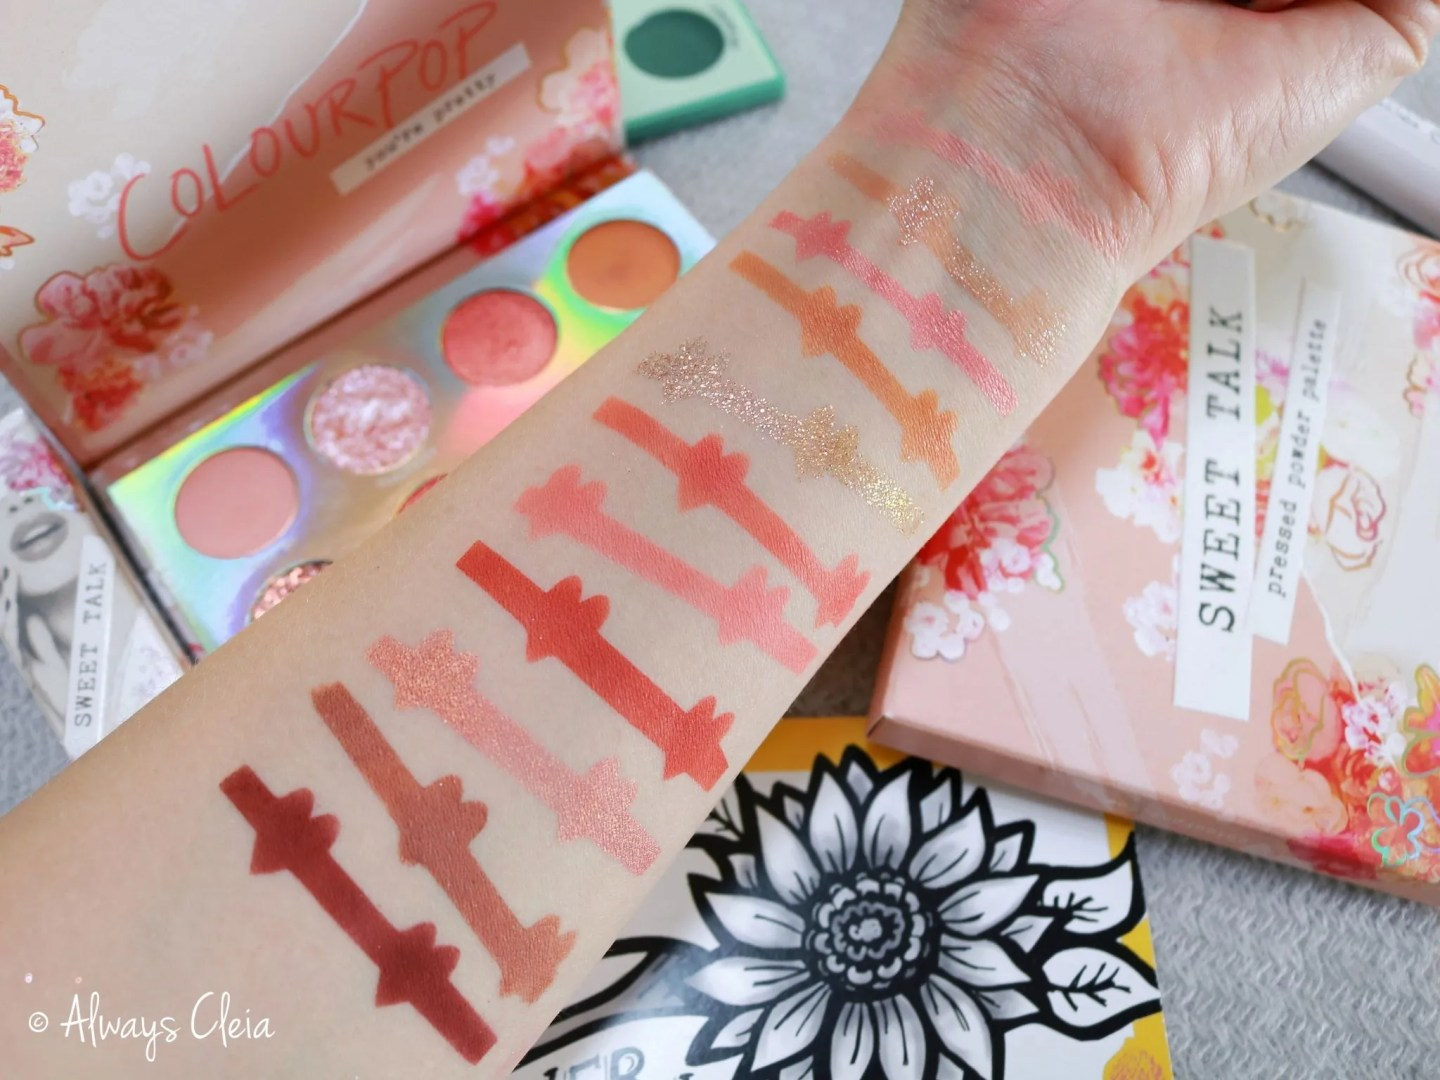 ColourPop Sweet Talk Palette Swatches